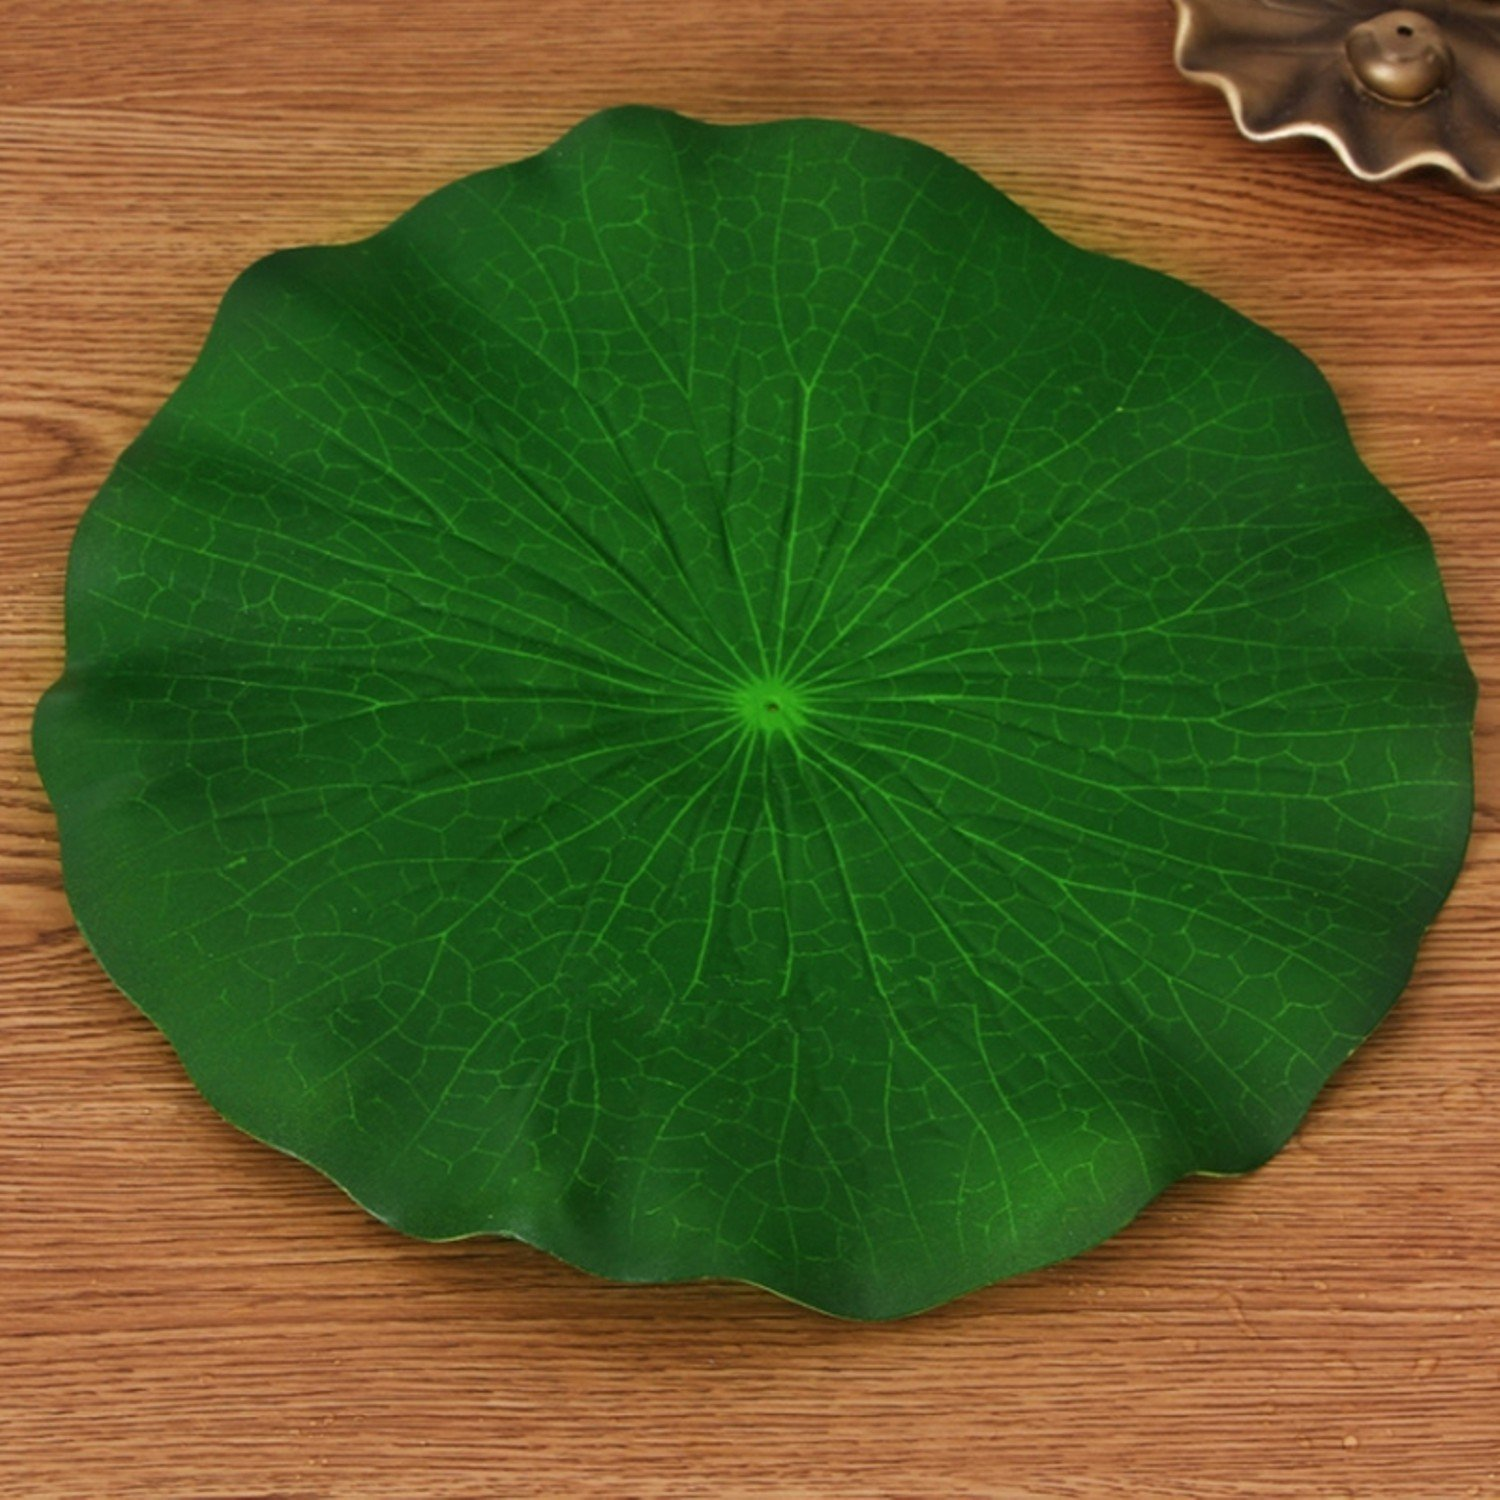 5Pcs-10-60-Cm-Real-Touch-Artificial-Lotus-Leaf-Foam-Flowers-Water-Lily-Floating-Pool-Plants-For-Wedding-Garden-EVA-Decoration-28Cm